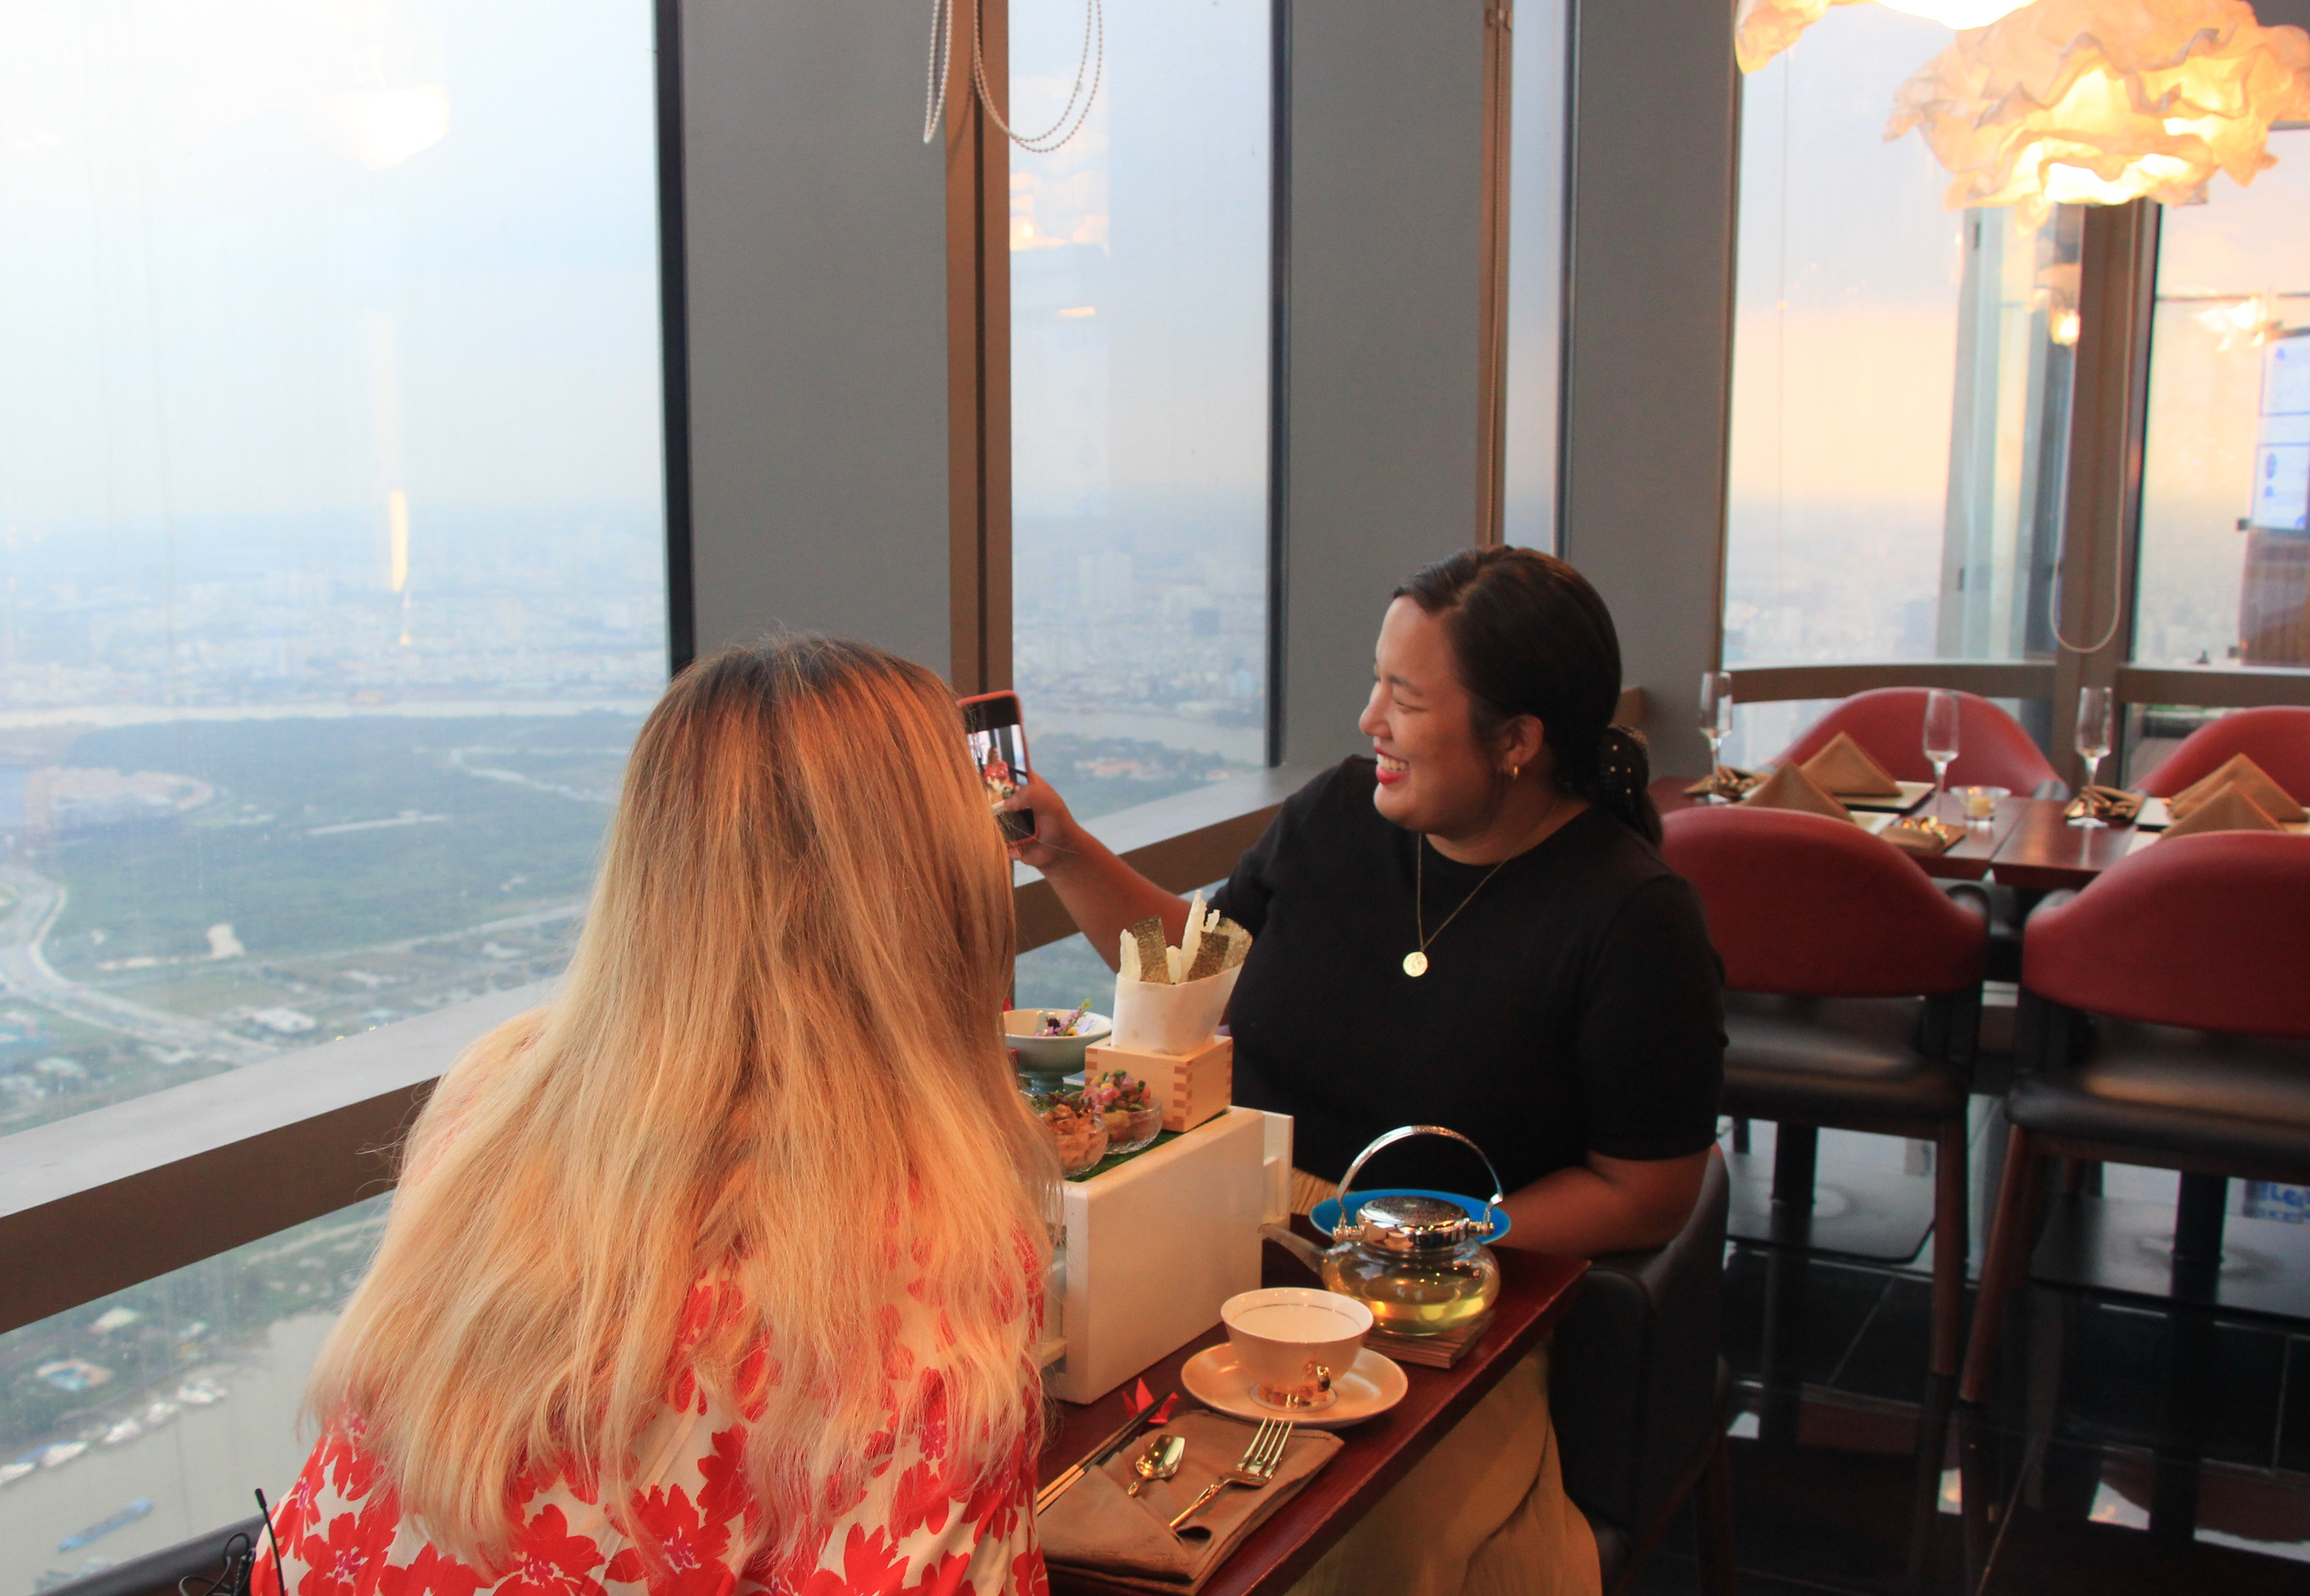 American travel blogger Samantha shows her friend a photo she has just taken while the two enjoying the High Tea in the Sky afternoon tea set at Miwaku Premium Restaurant on the 80th floor at the 81-story Landmark 81 in Ho Chi Minh City's Binh Thanh District on October 22, 2020. Photo: Dong Nguyen/ Tuoi Tre News